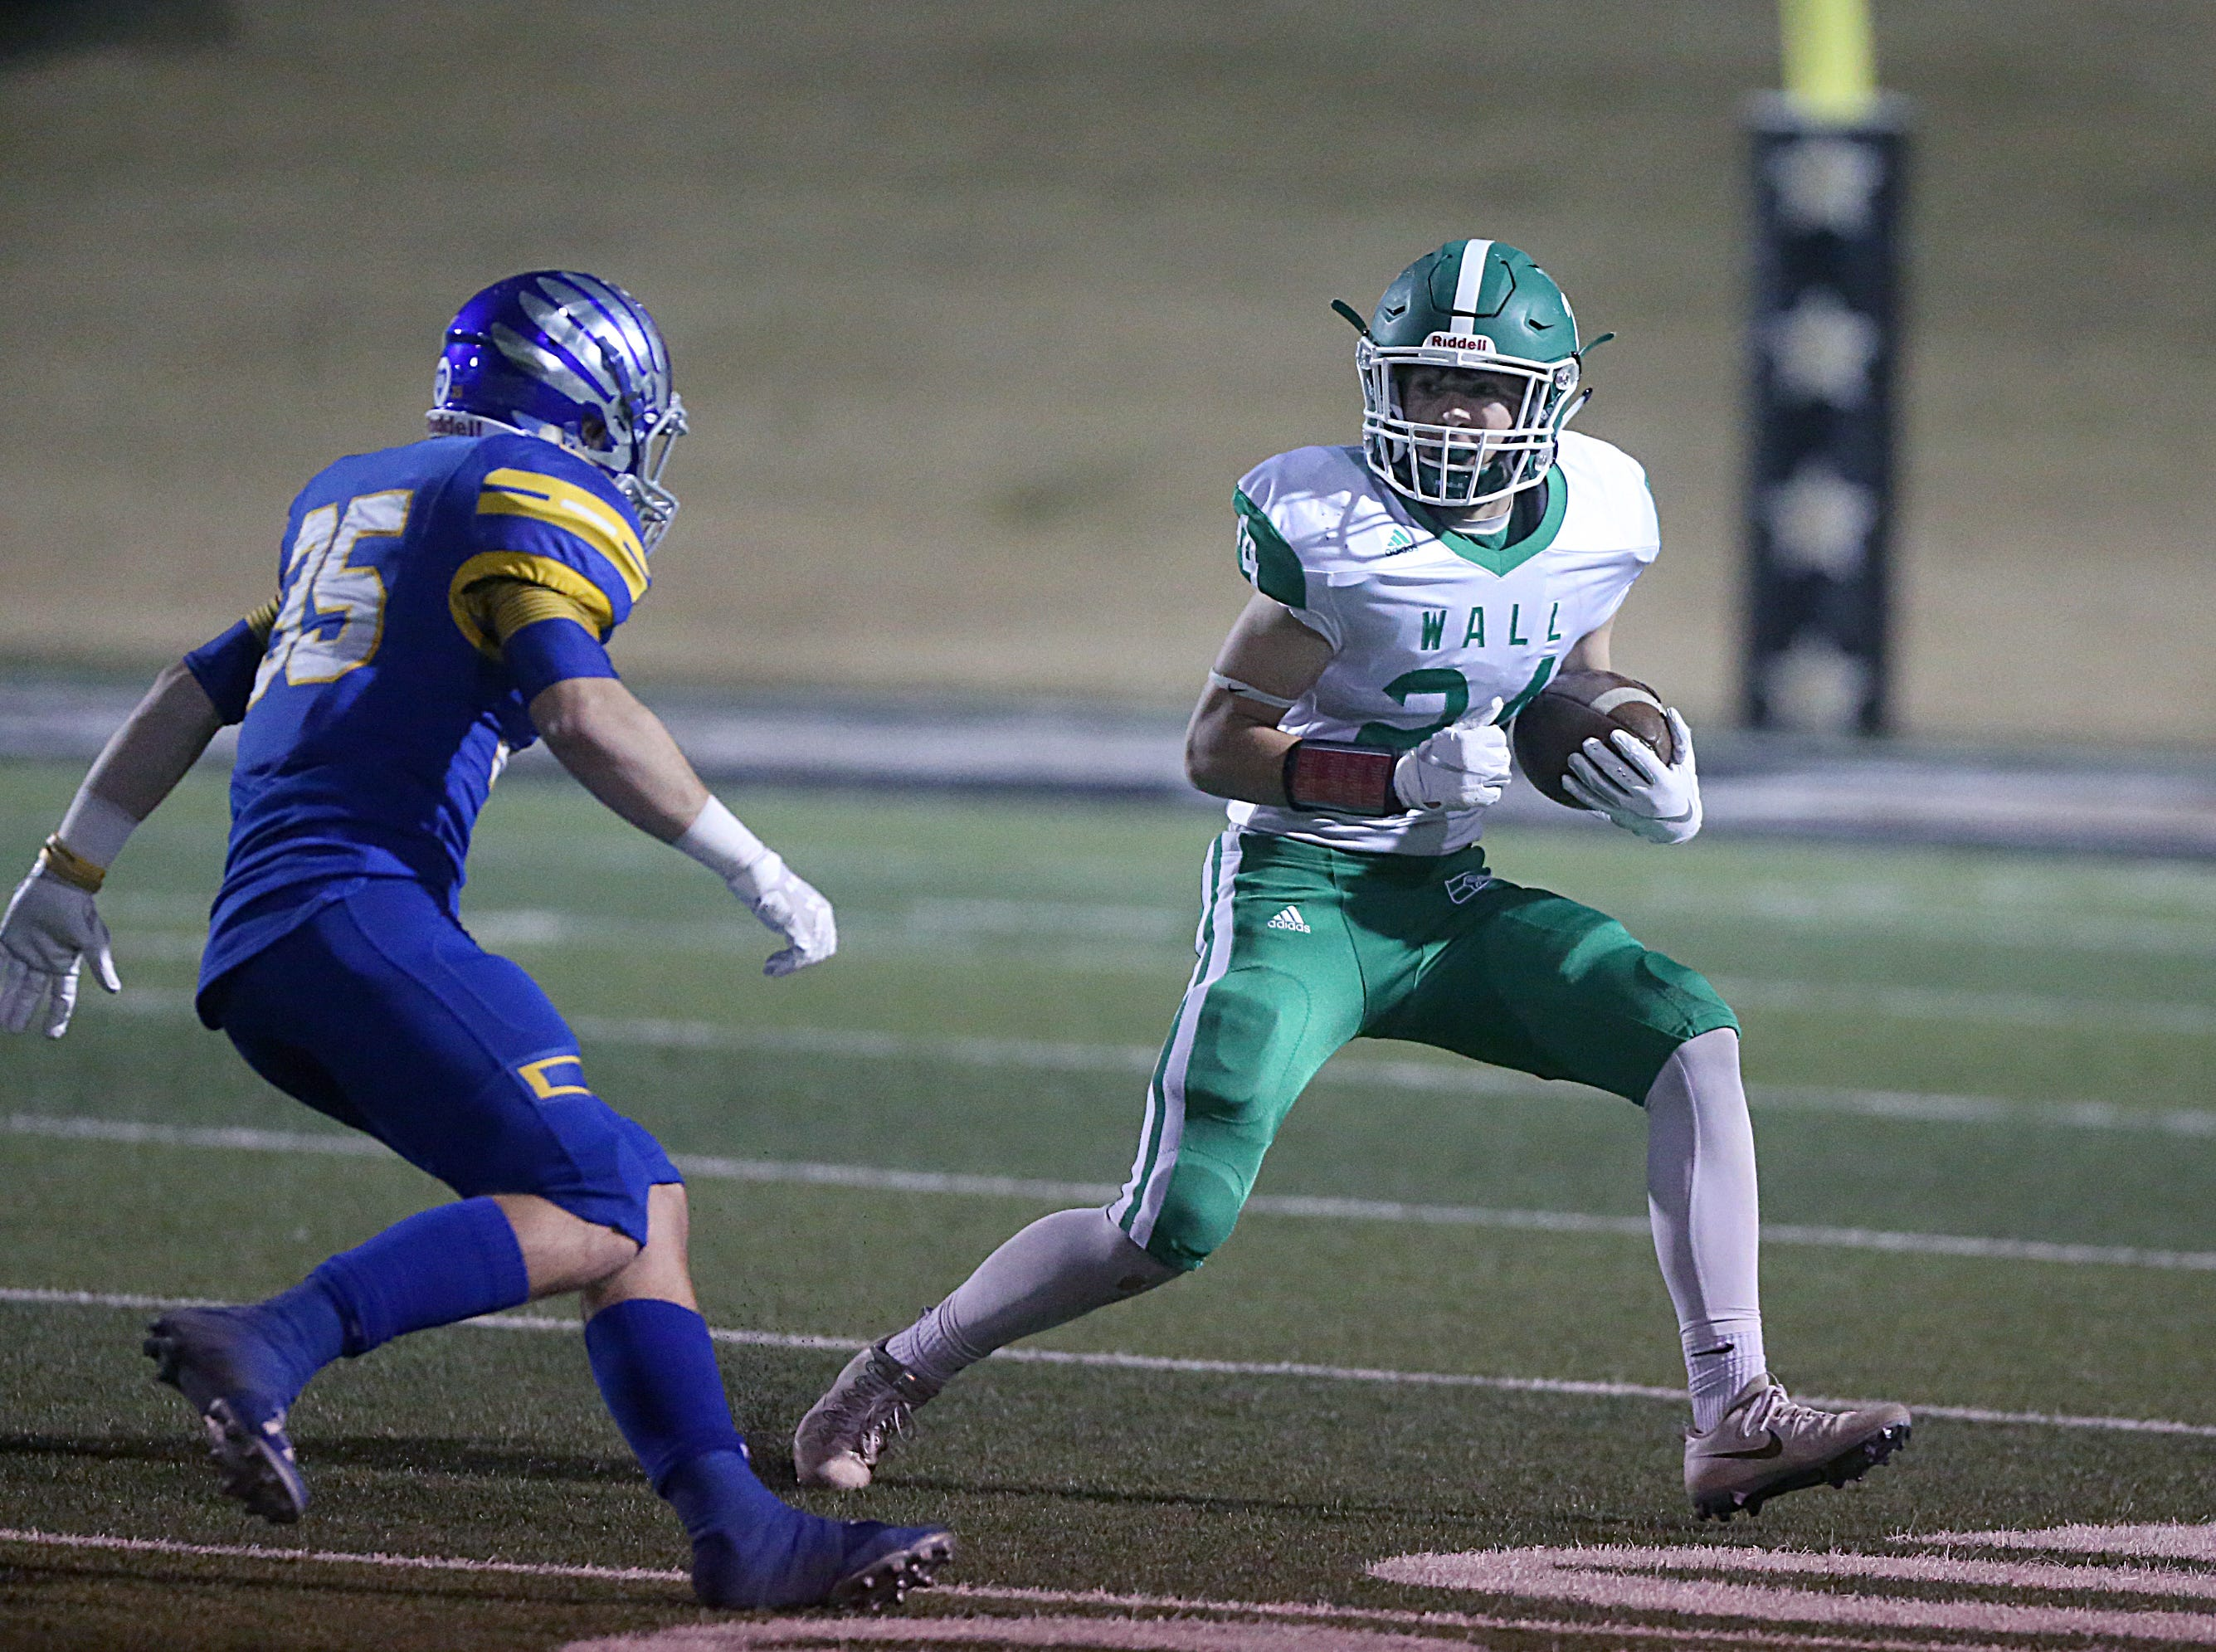 Wall's Kye Herbert (#24) tries to rush past Brock's Landon Hoffman (#35) Friday, Nov. 30, 2018, at Shotwell Stadium in Abilene.